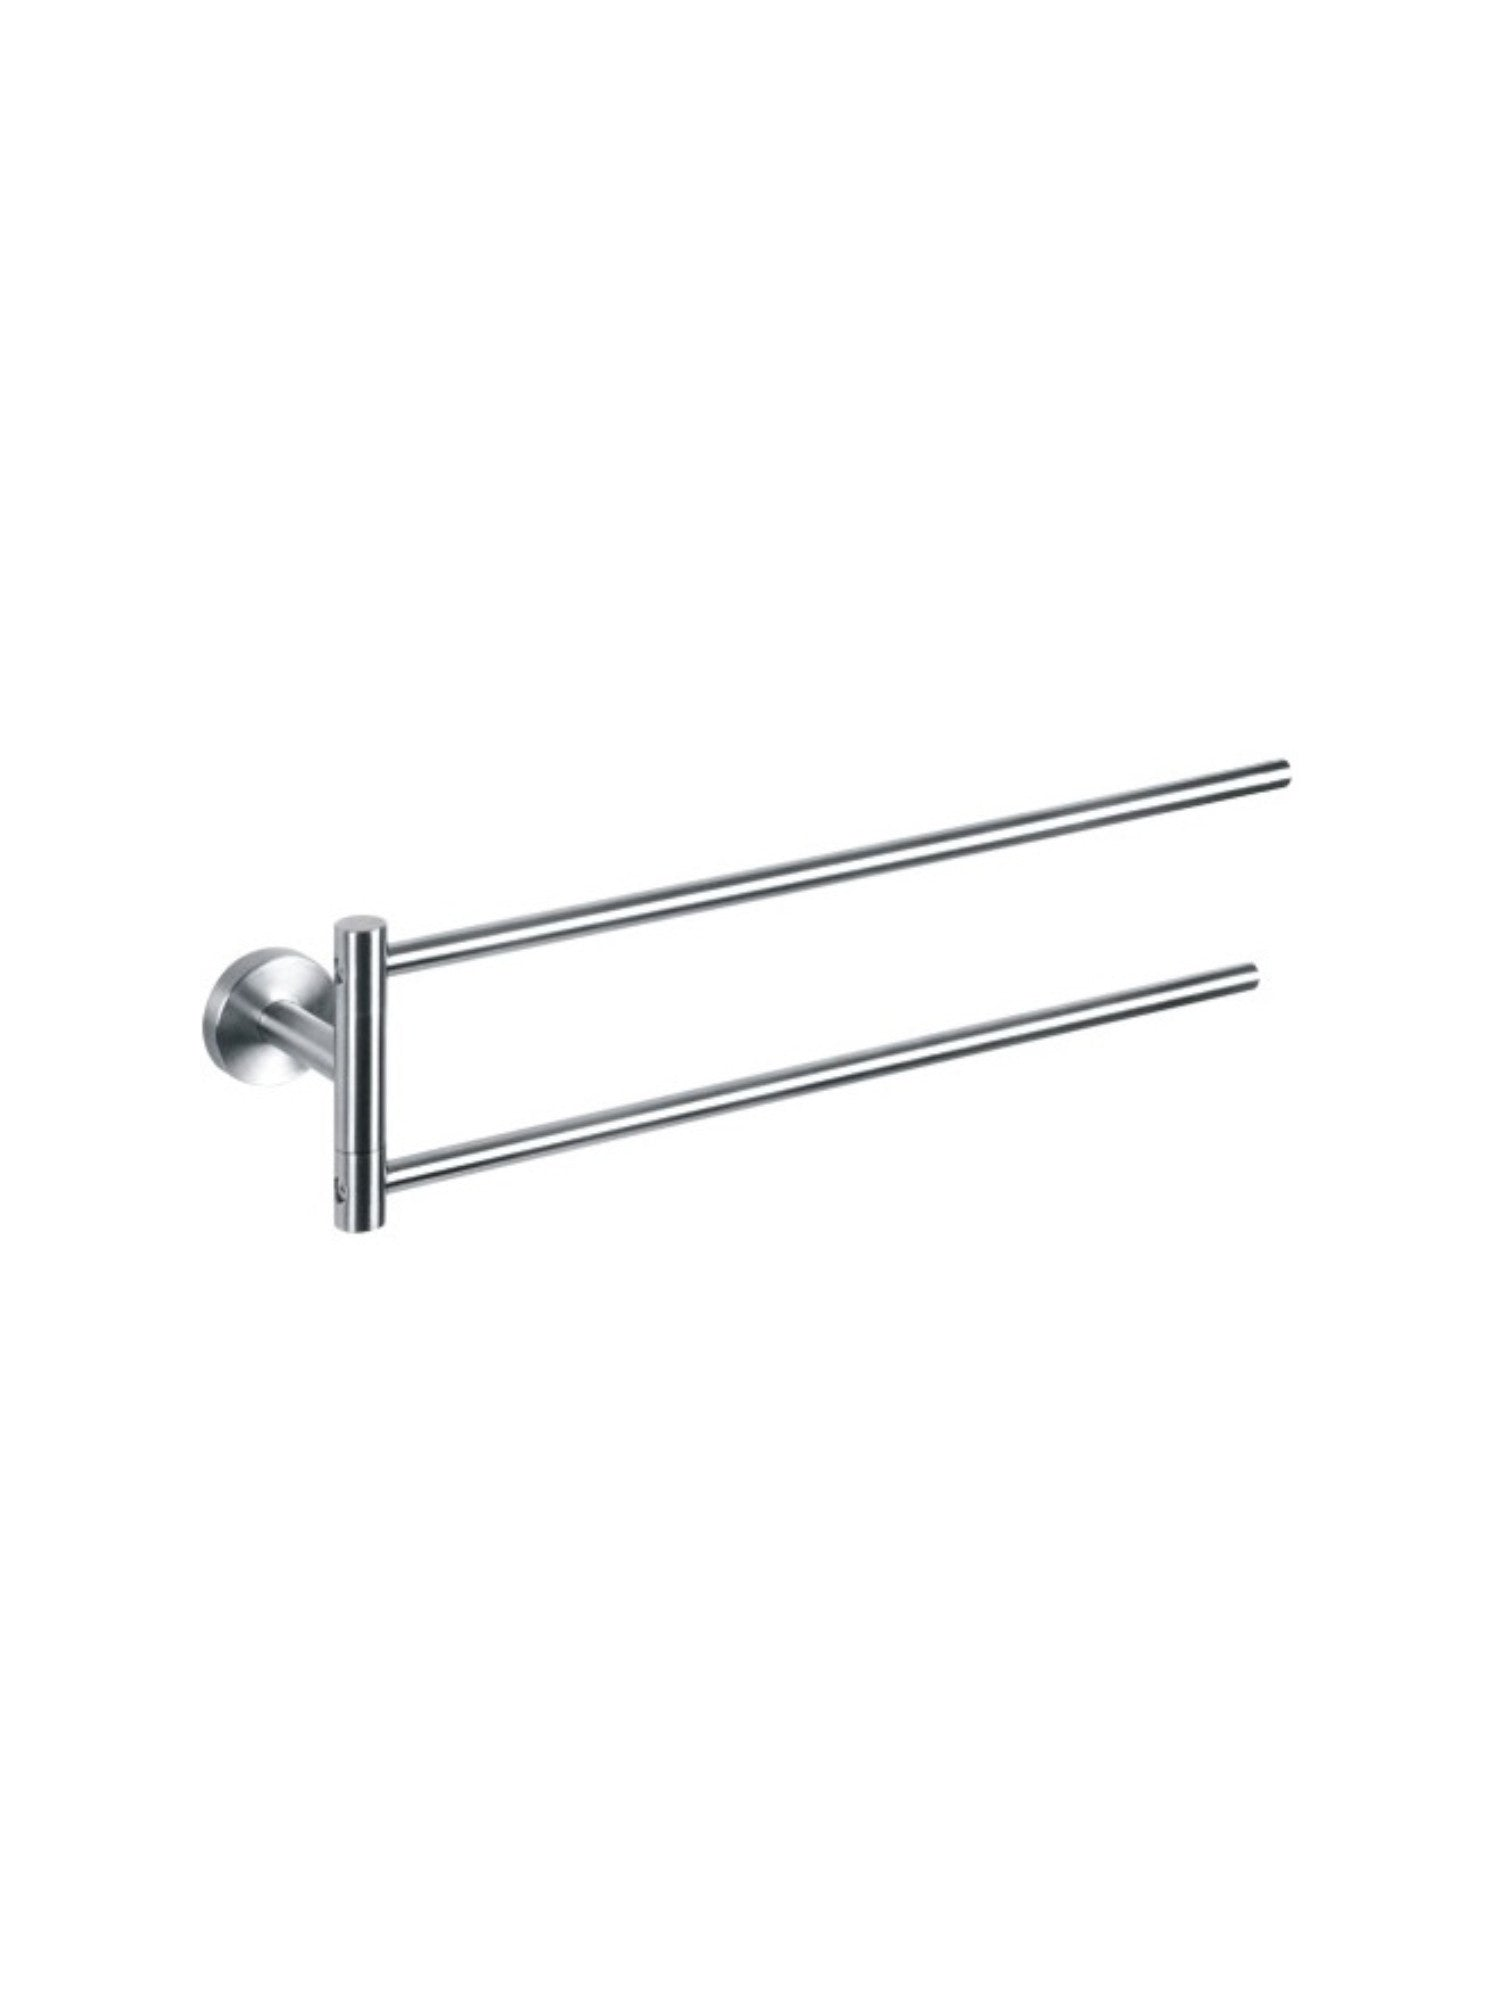 Klear Double Swing Rail #JM‐8122